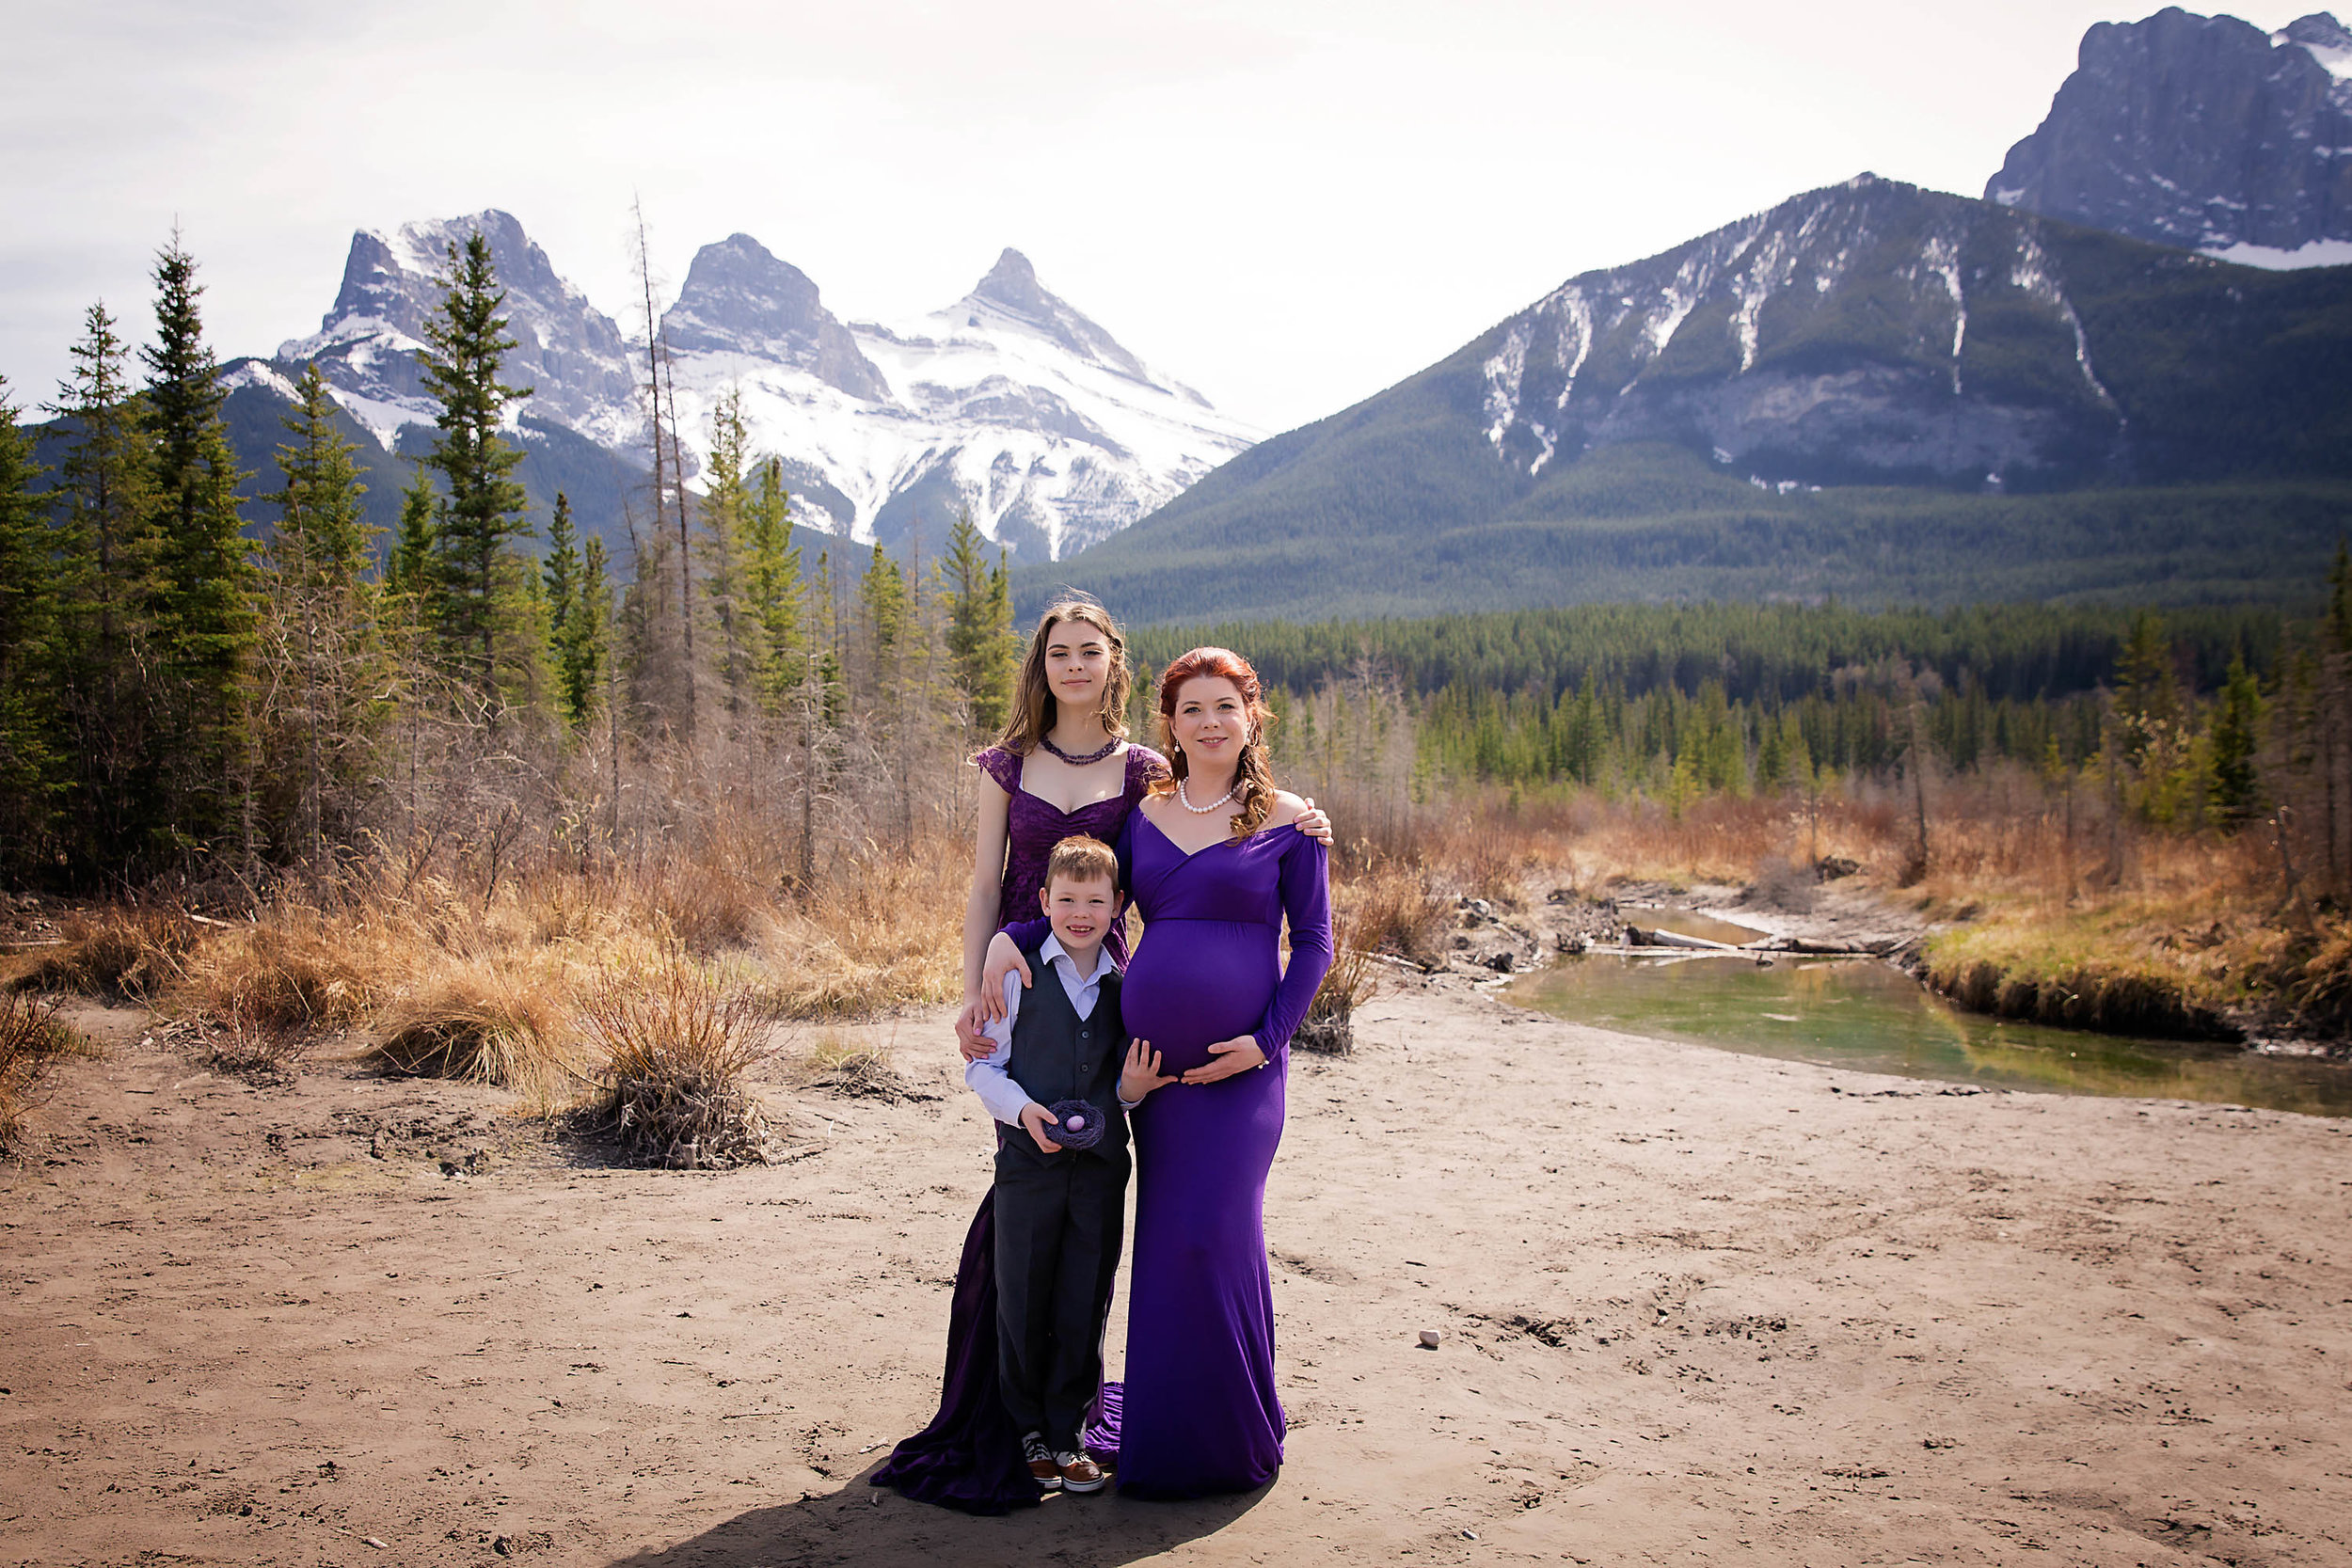 Third baby is on its way! Mom to be and her two children are posing for the camera in this maternity session. Mountain Maternity Session in Canmore, Alberta, Canada. Three sisters mountains. Calgary and Airdrie Newborn and Maternity Photographer - Milashka Photography